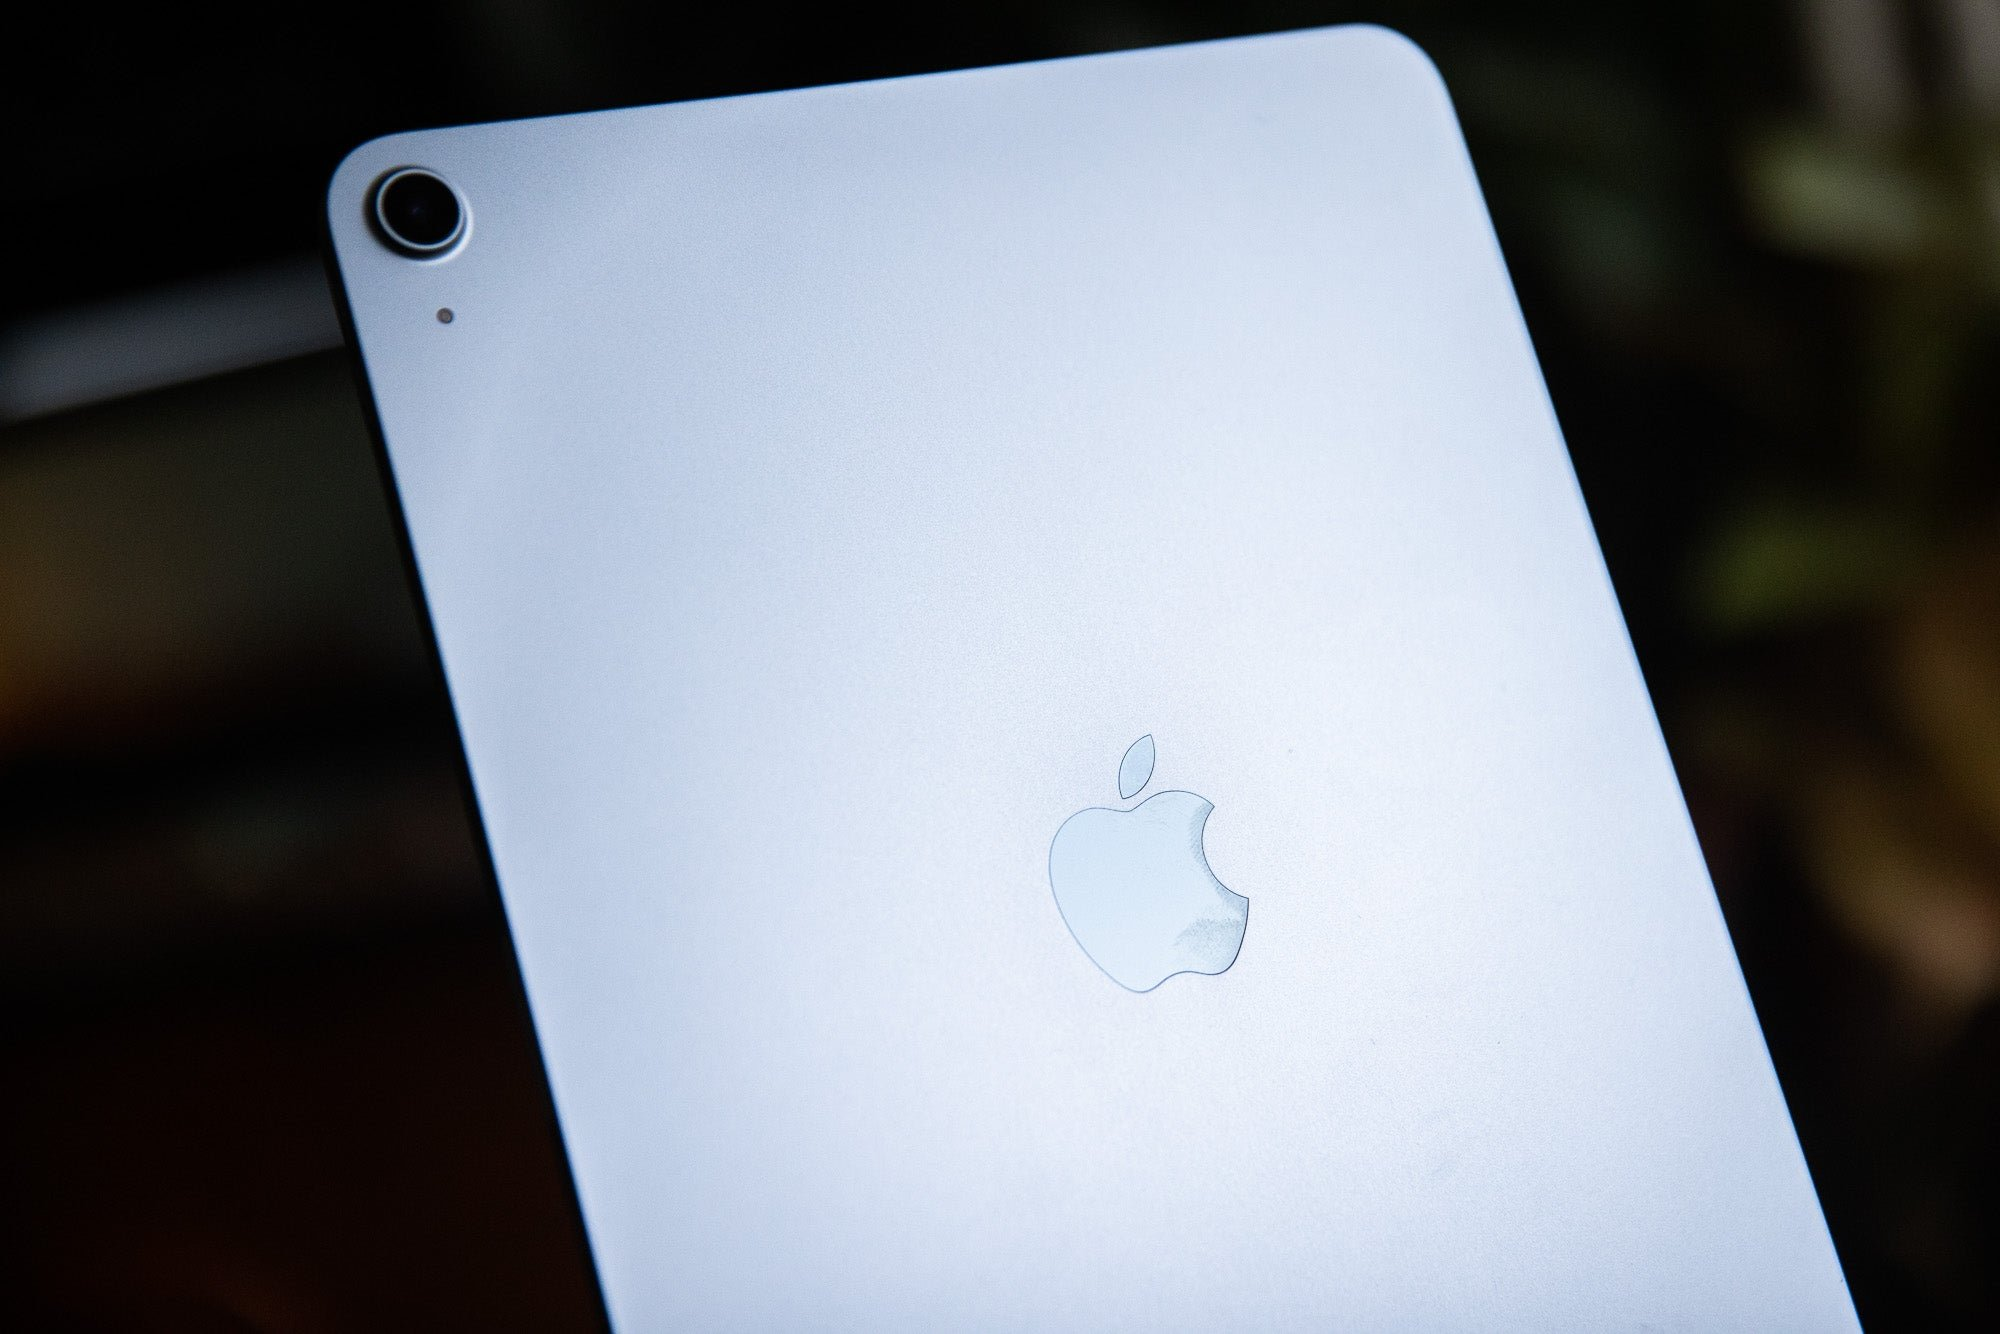 Go update your Apple gadgets right now to avoid this new security vulnerability